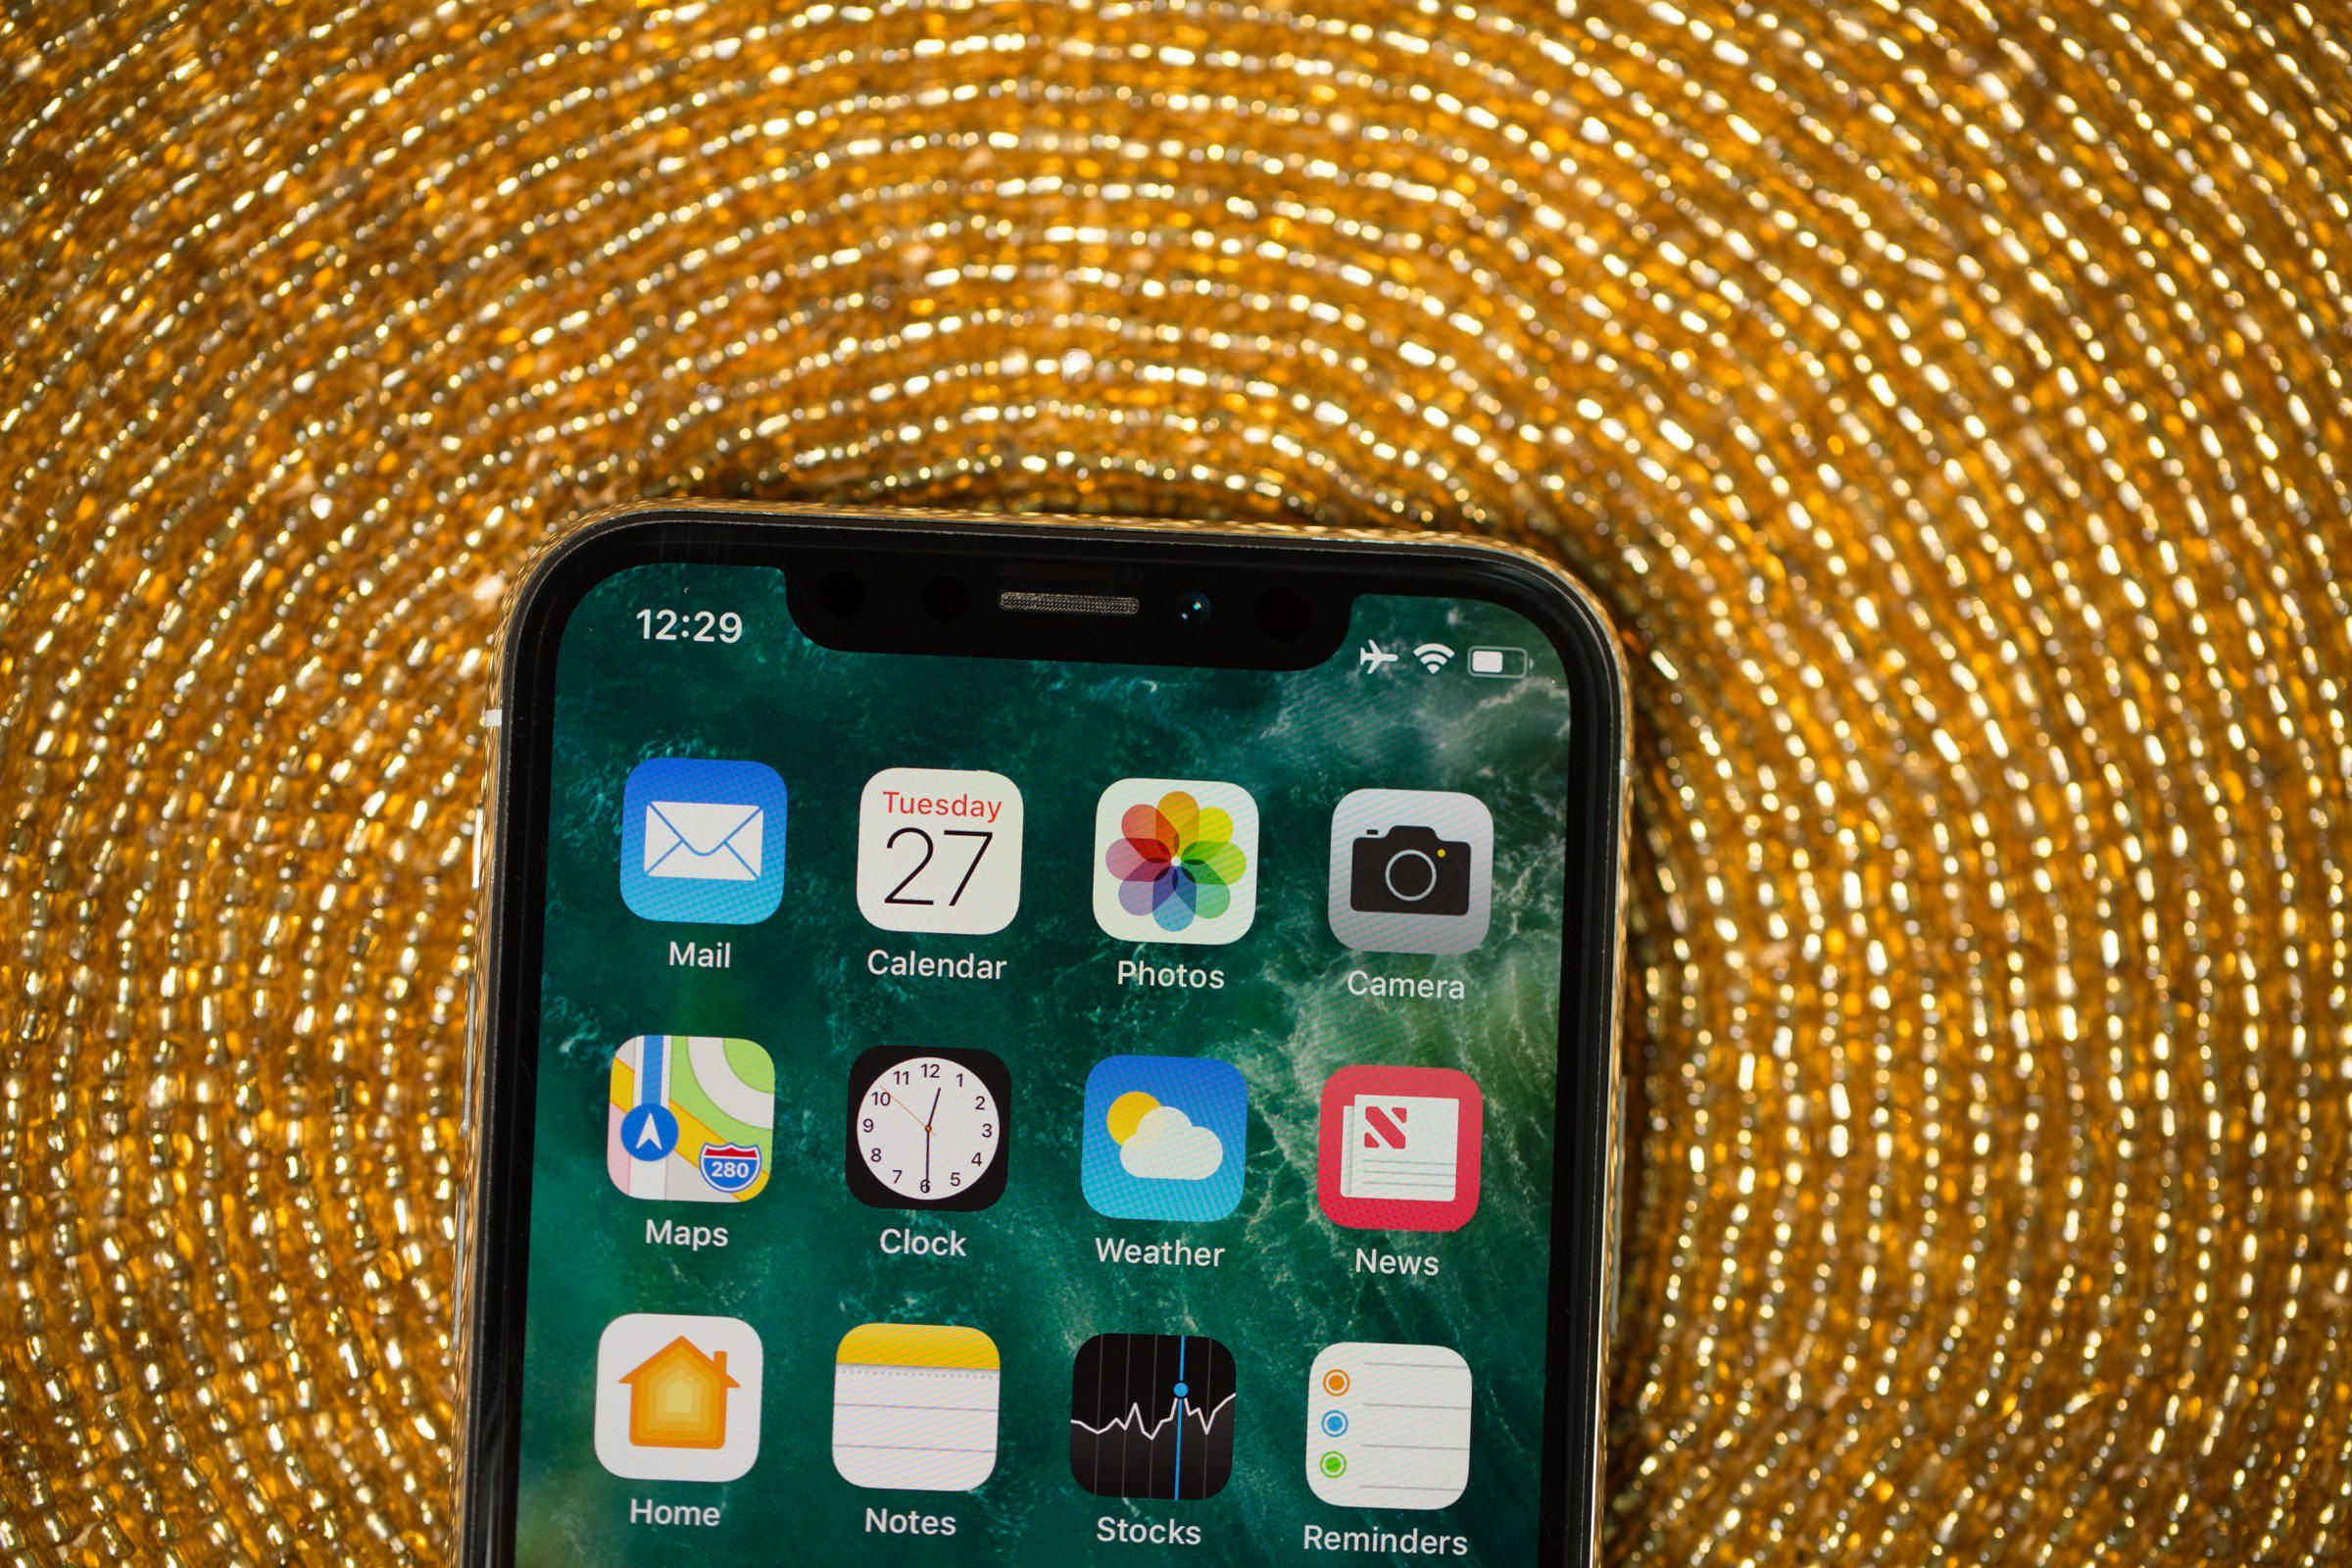 iPhone X stuck? Here's how to force it to restart Iphone